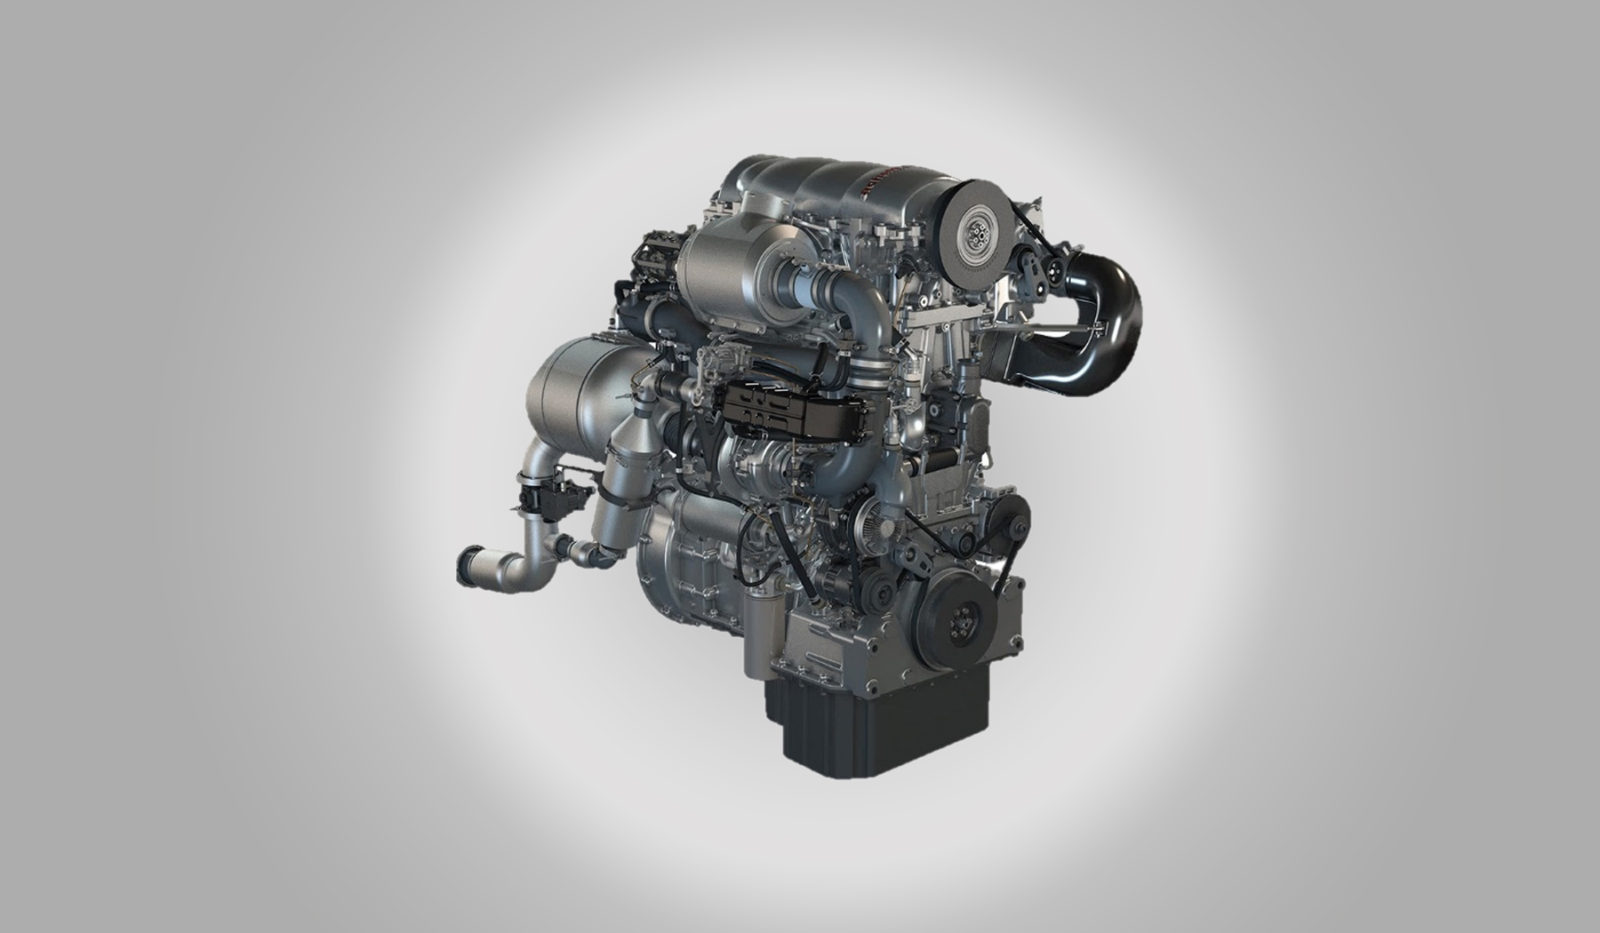 examining-the-low-emission-10.6-liter,-opposed-piston-engine-from-achates-power